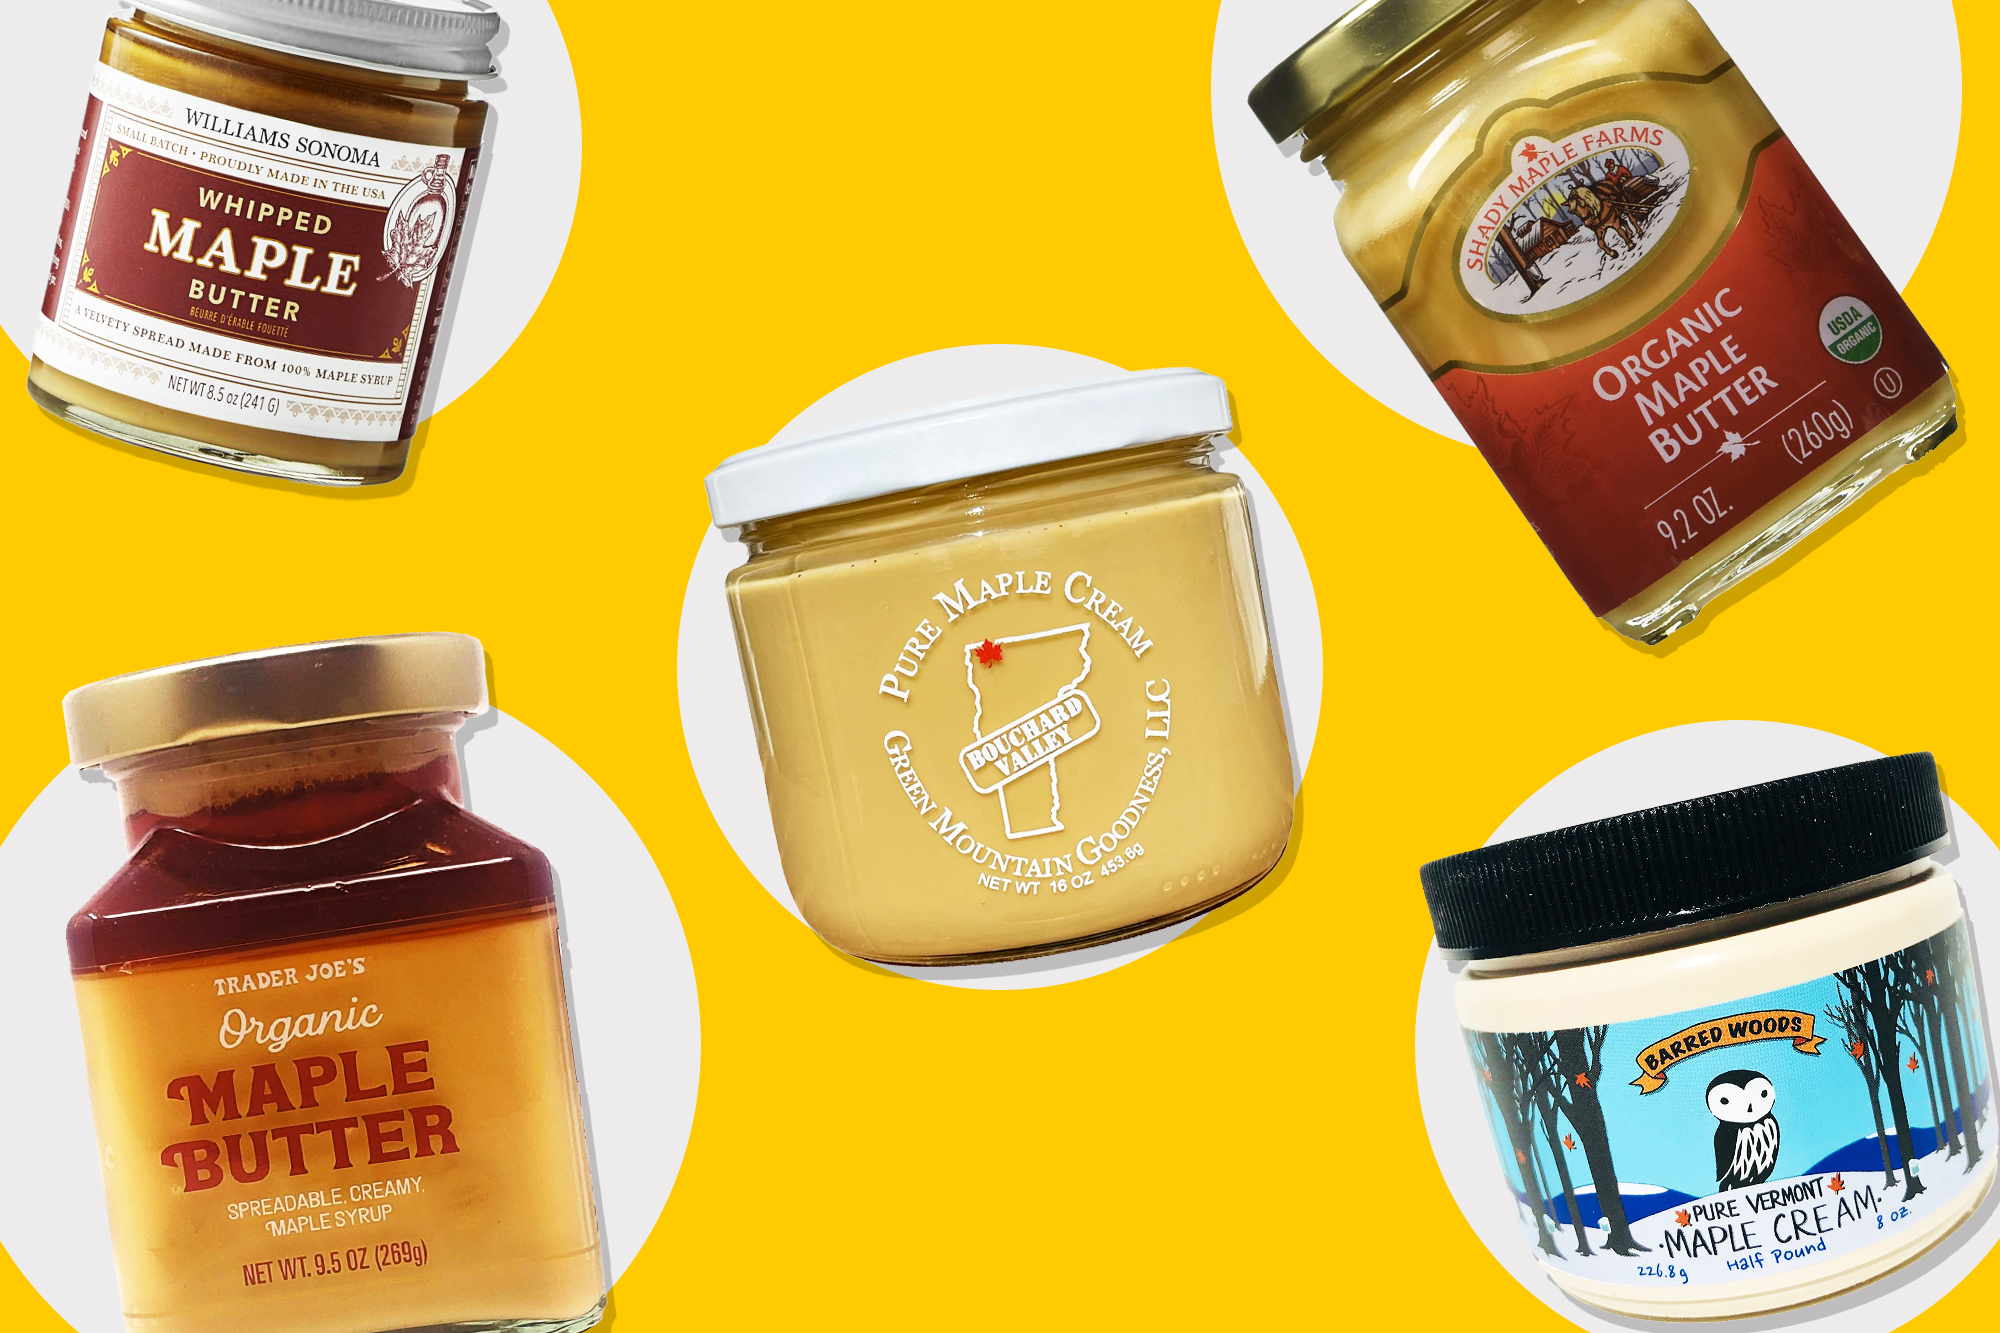 5 different types of Maple butters on a yellow and grey designed background